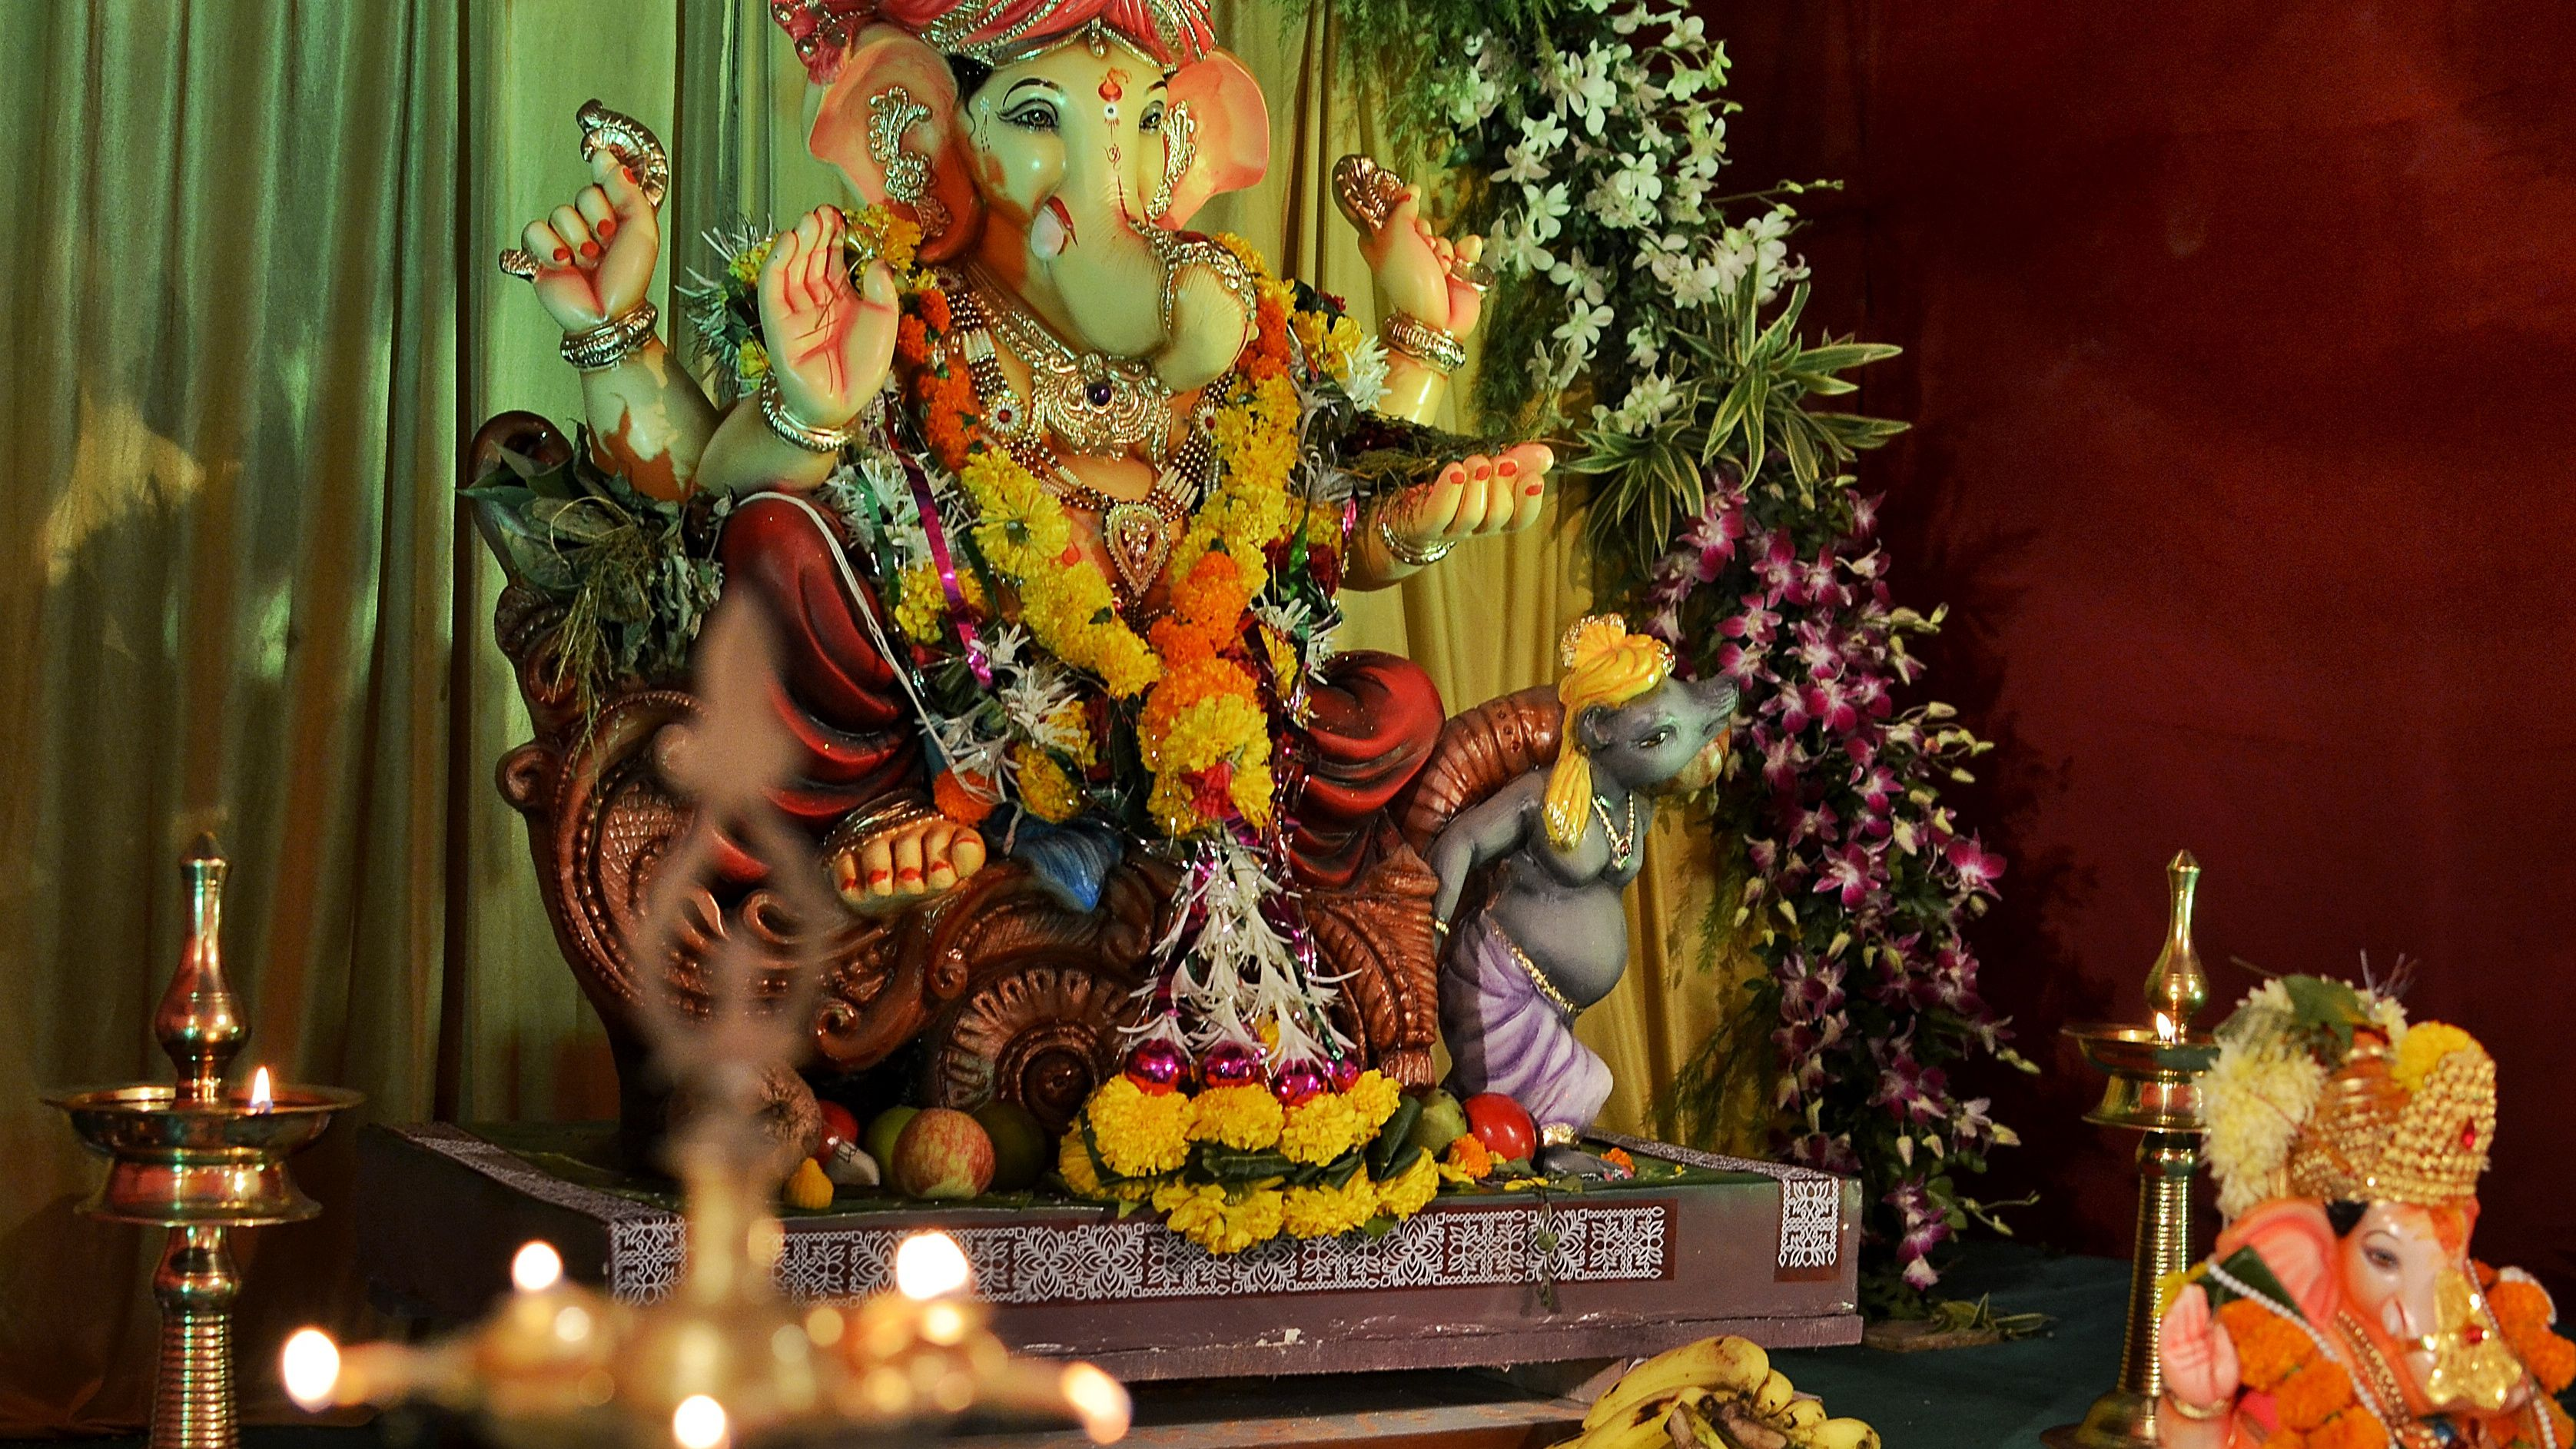 When Is Ganesh Chaturthi In 2020 2021 And 2022